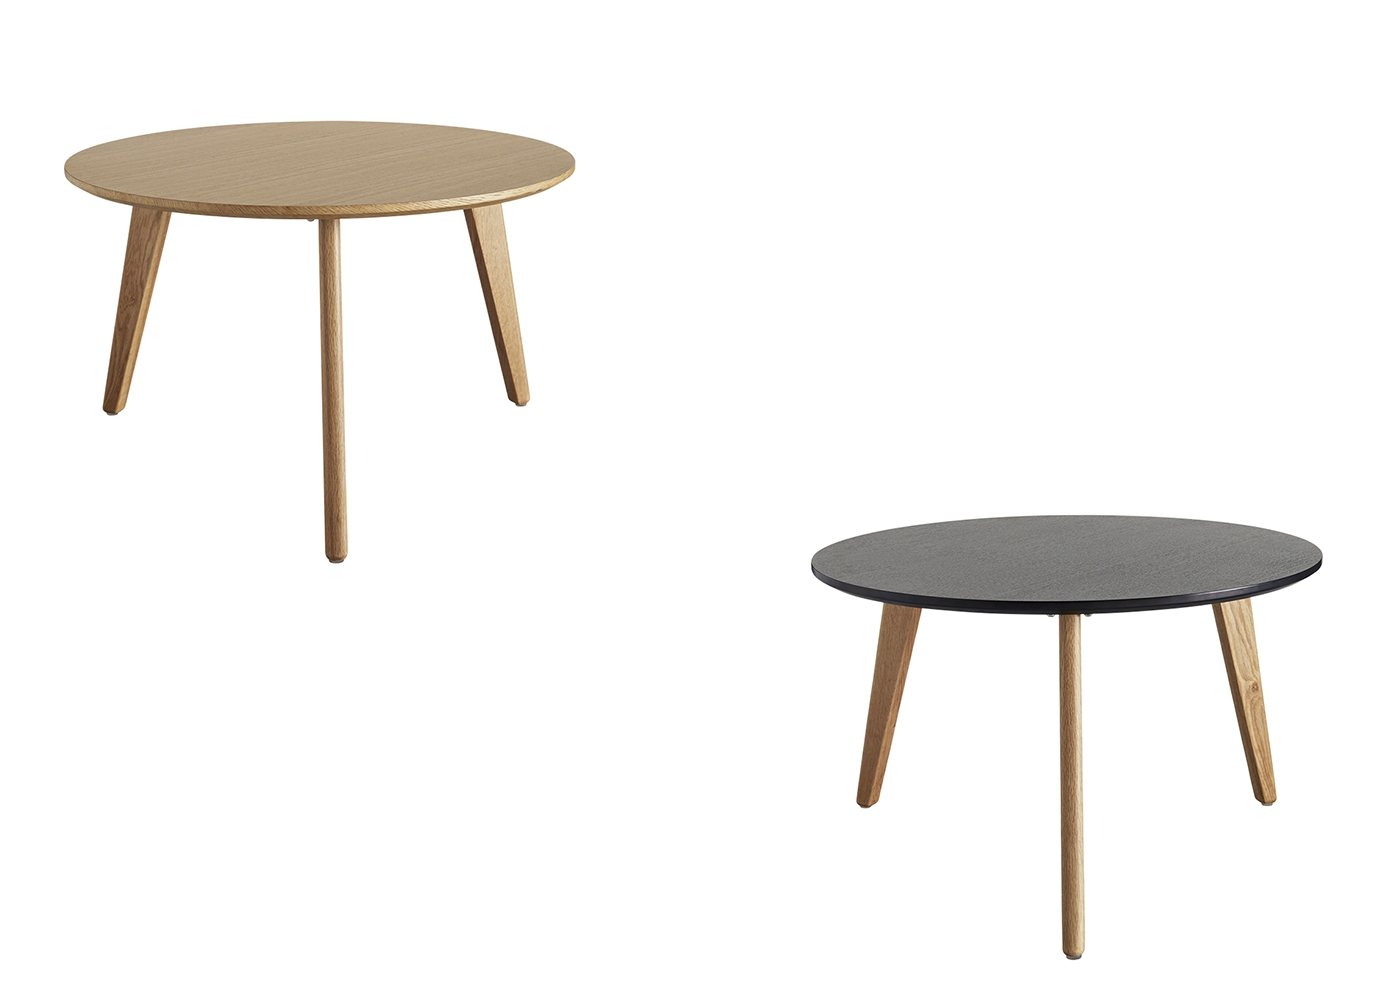 Table gigogne design scandi en ch ne chez ksl living for Table basse scandinave en chene